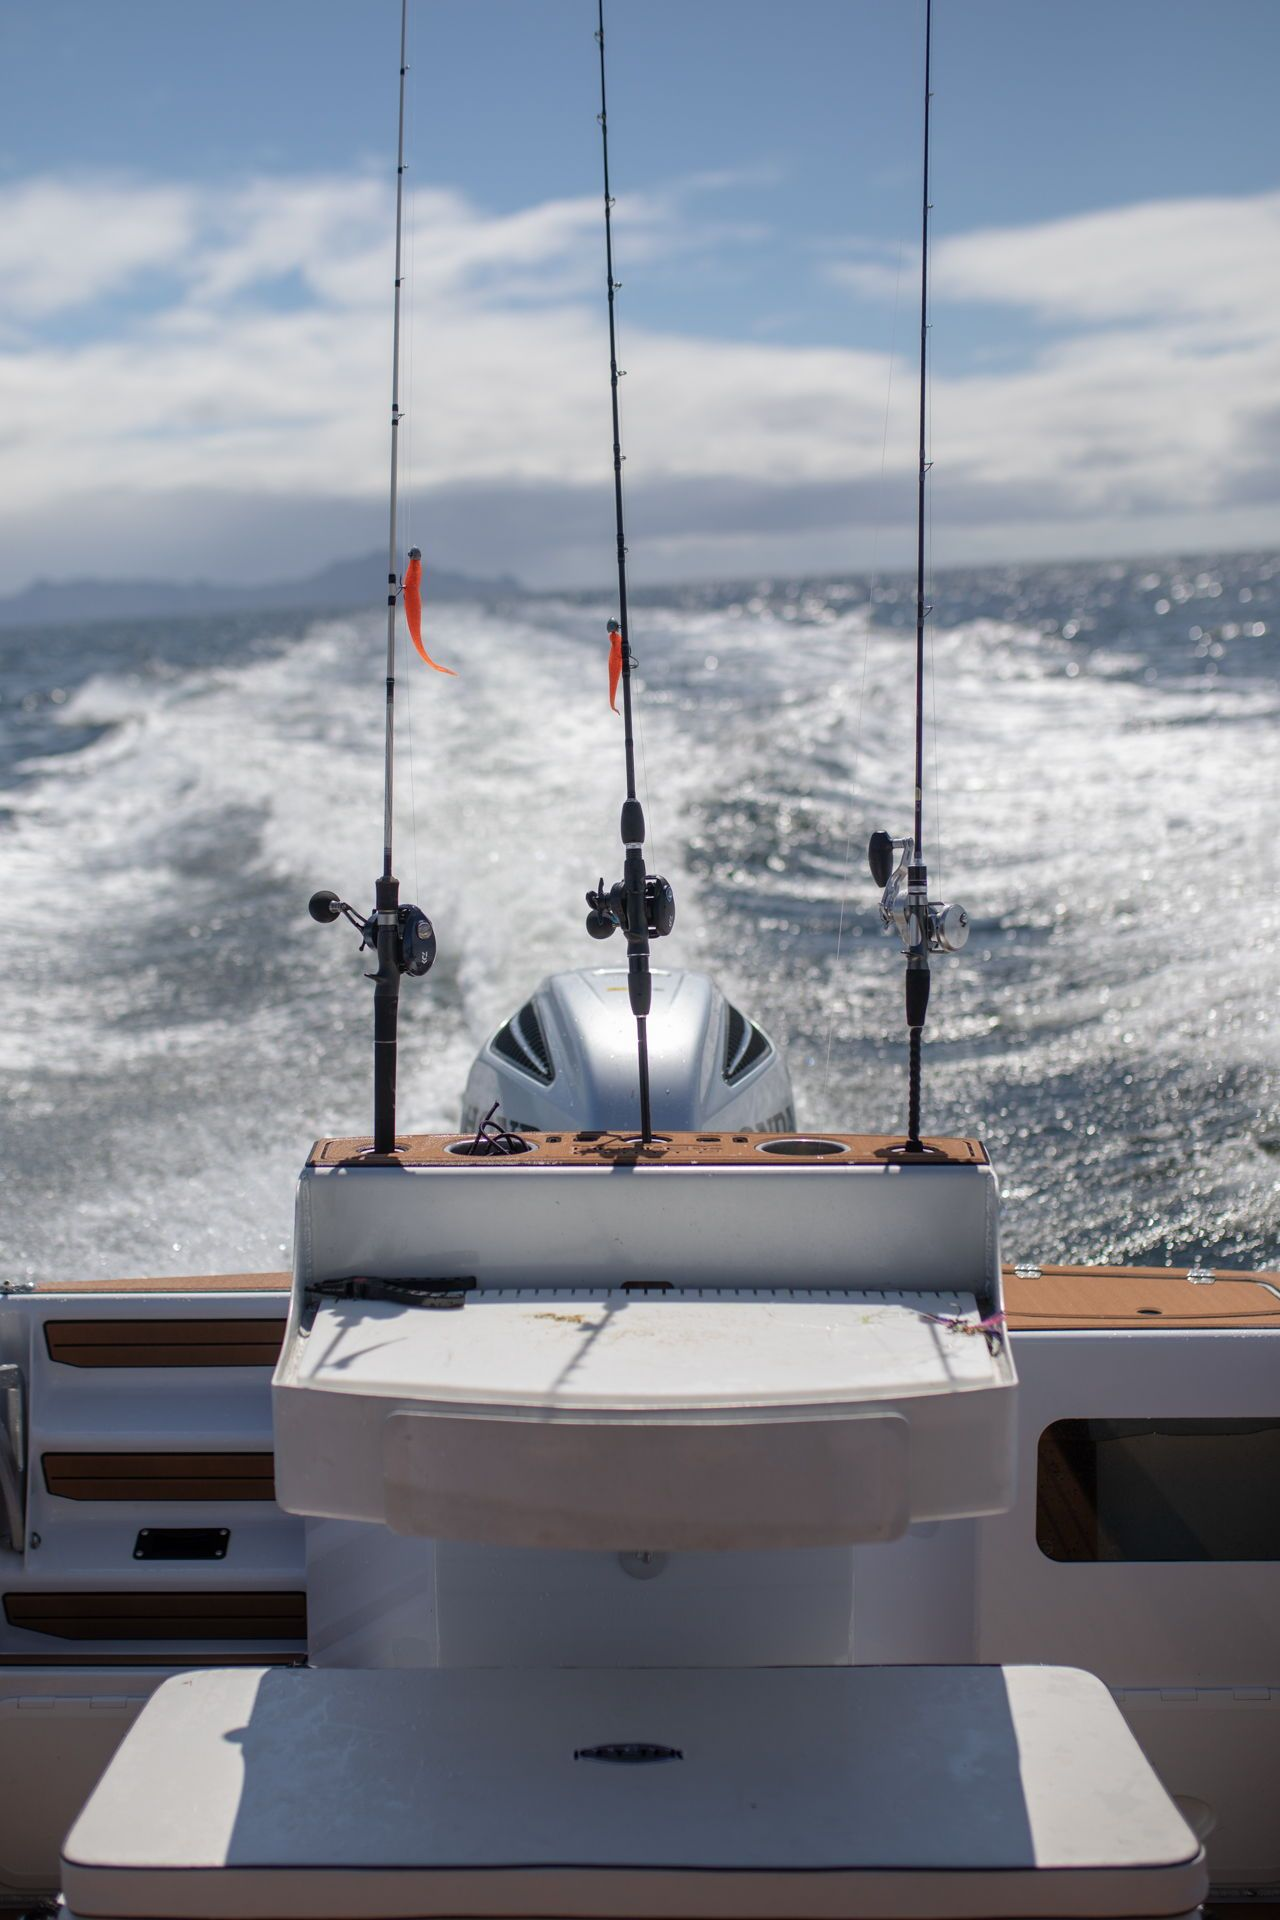 How To Get The Best Deal On A New Boat